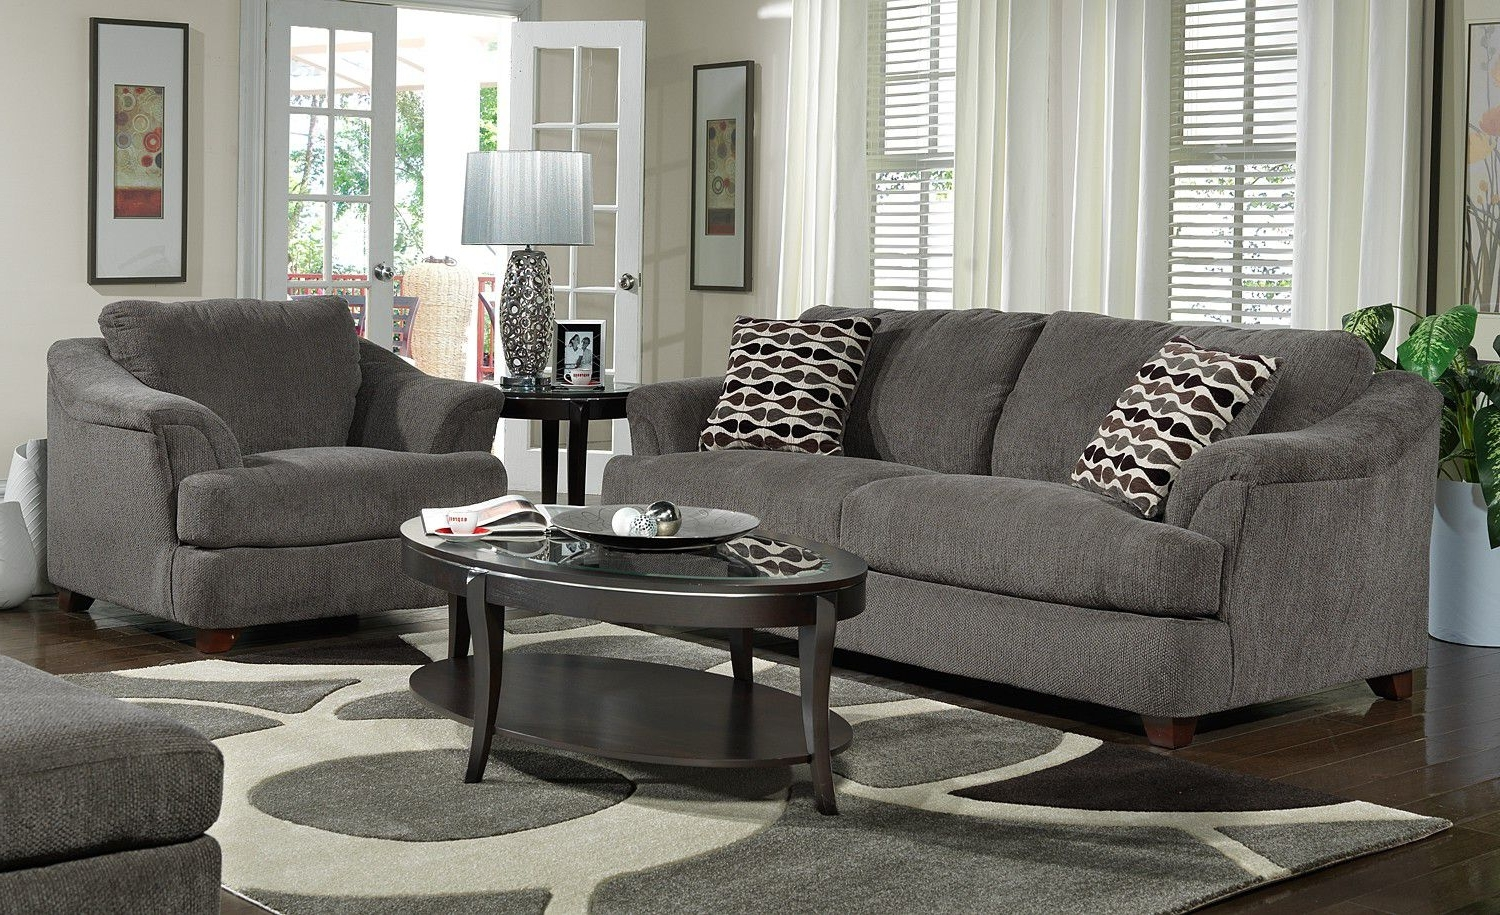 living room sofa and chair ideas accent image gallery of grey chairs view 4 20 photos design susan inside 2019